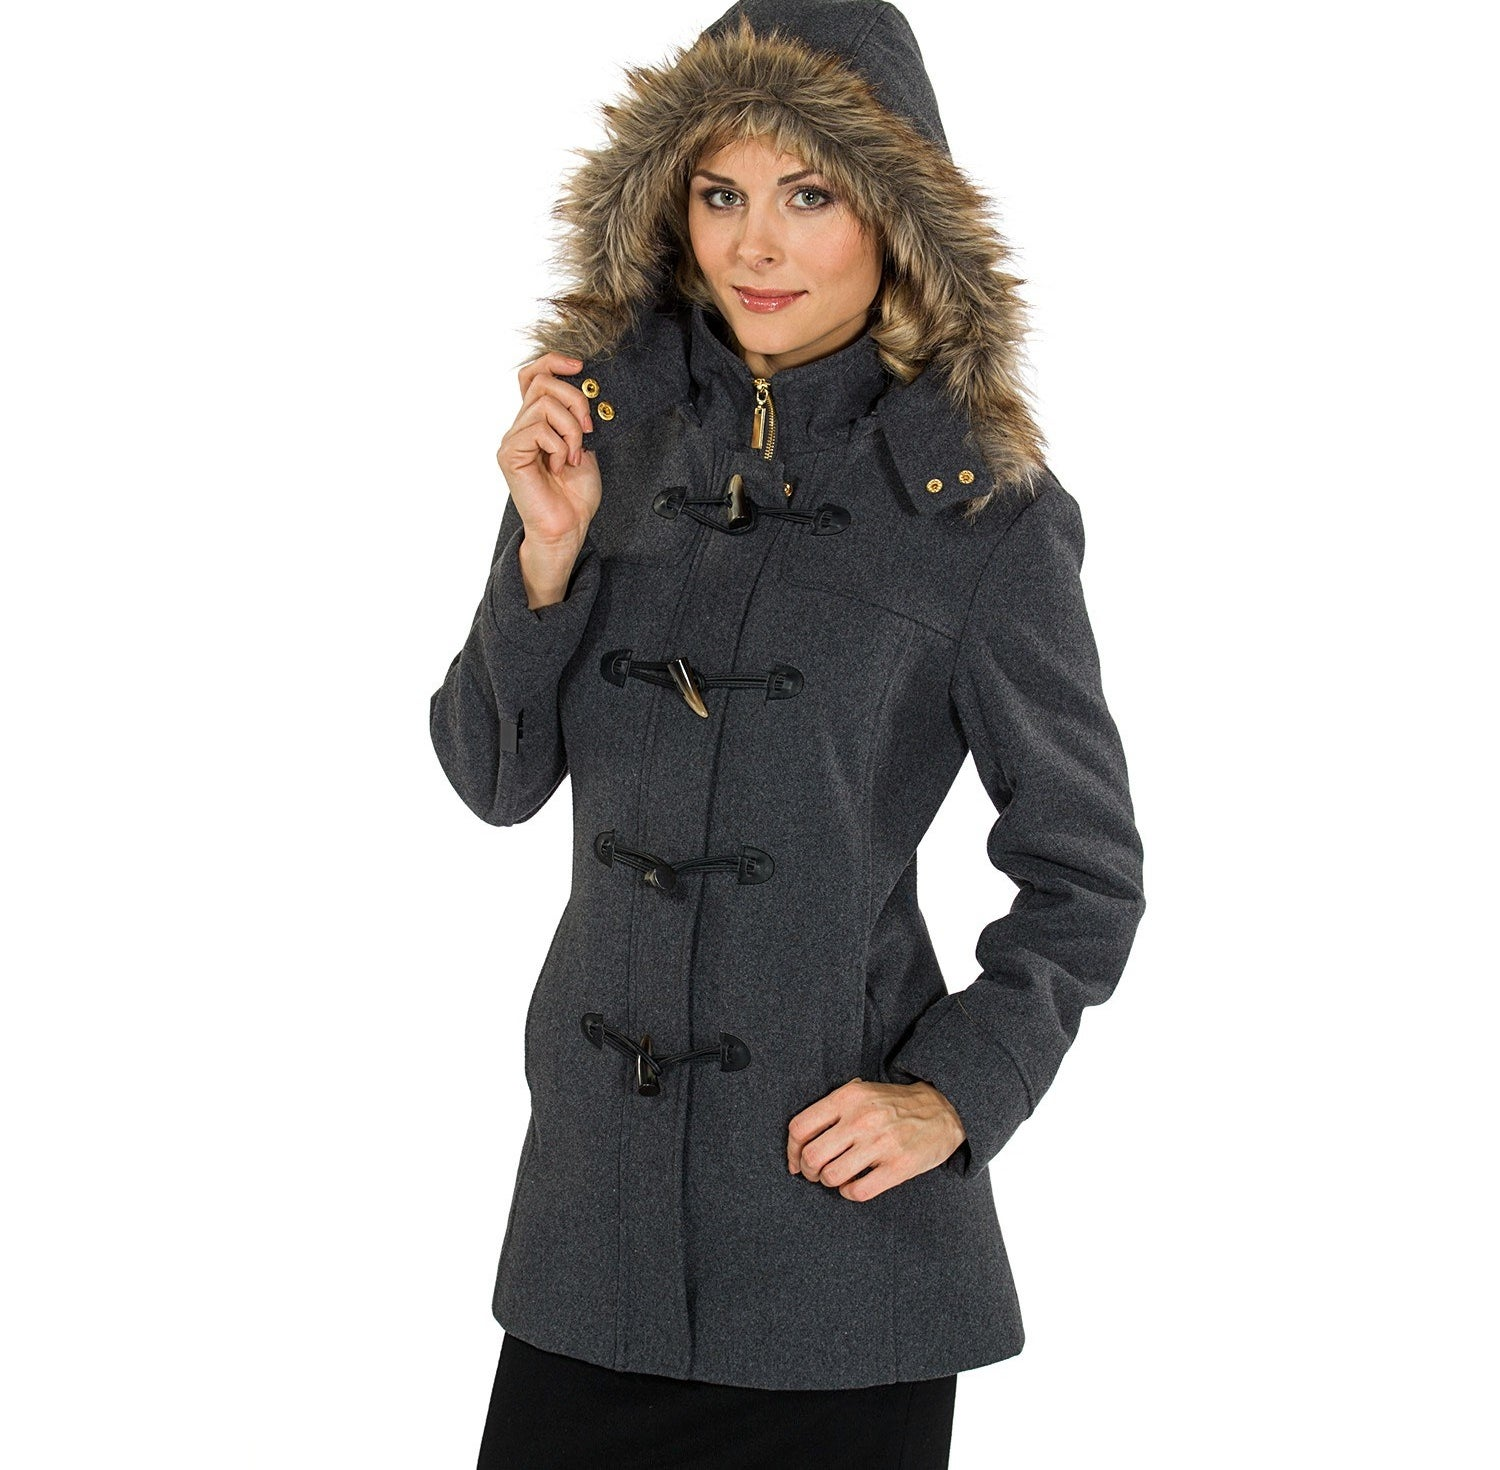 """Promising review: """"This coat is wicked good. It's kept me warm in below-zero temps, (seriously), and the details are fantastic. My boss actually complimented me on it. I'm shocked by the price of it, to be honest. Just a gorgeous coat. I've worn it daily for a few months, and it still looks brand new. Hands down one of the best purchases I've made on Amazon."""" —JanePrice: $49.99 (available in four colors, and sizes S–2XL)"""